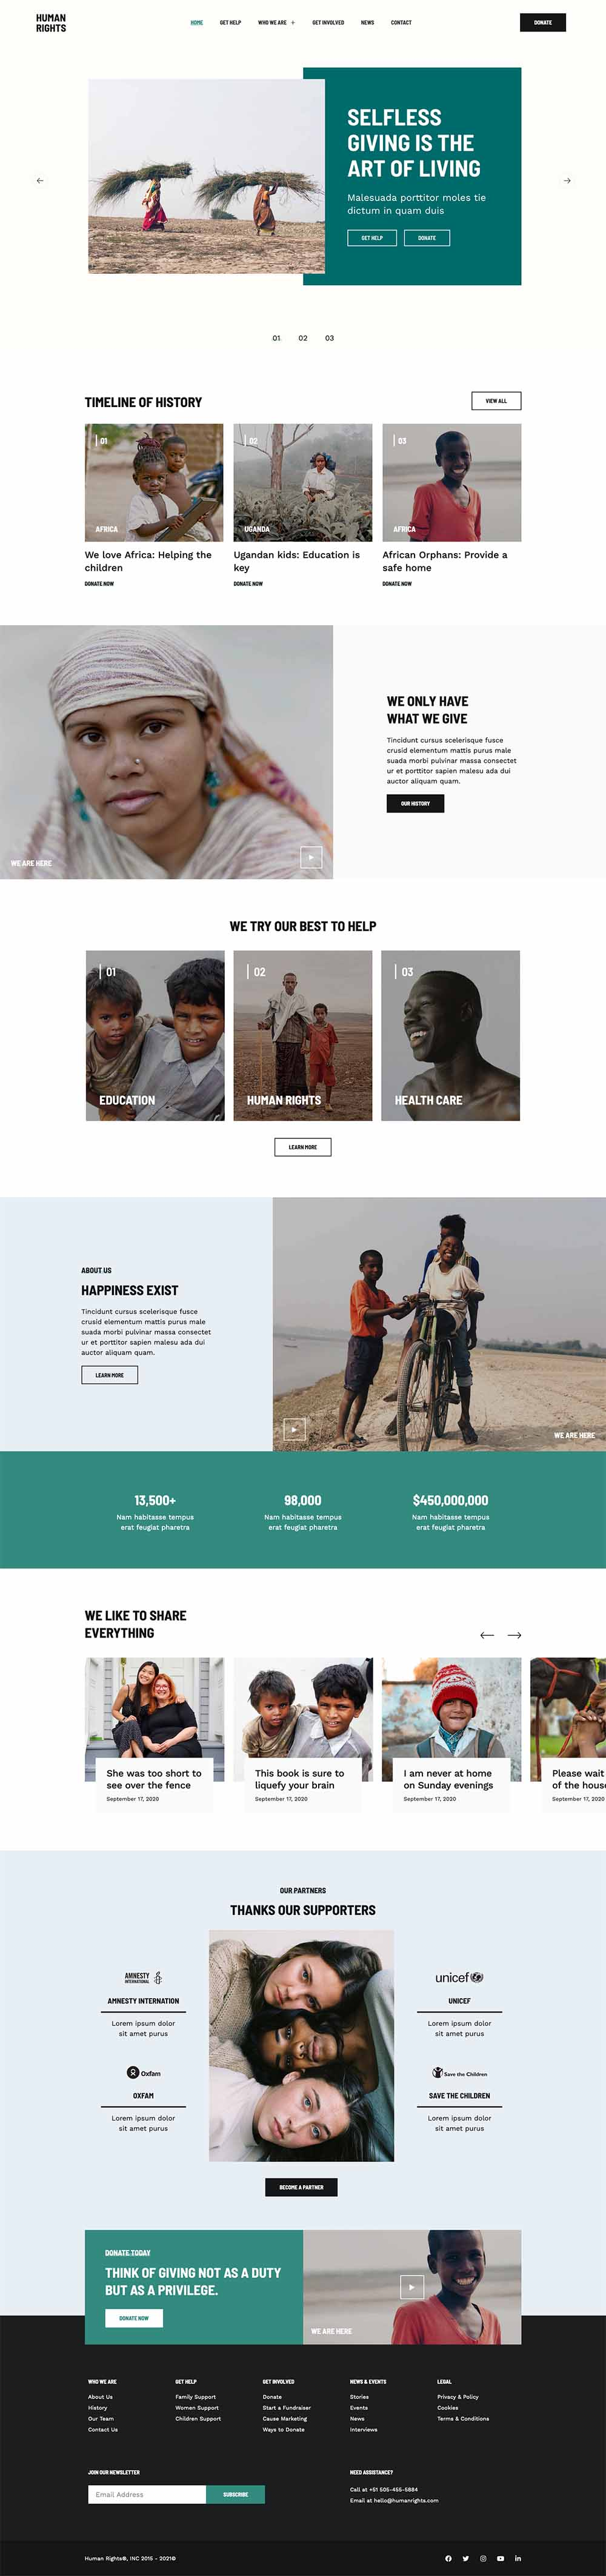 Human Rights - Charity and Donation Demo for WordPress